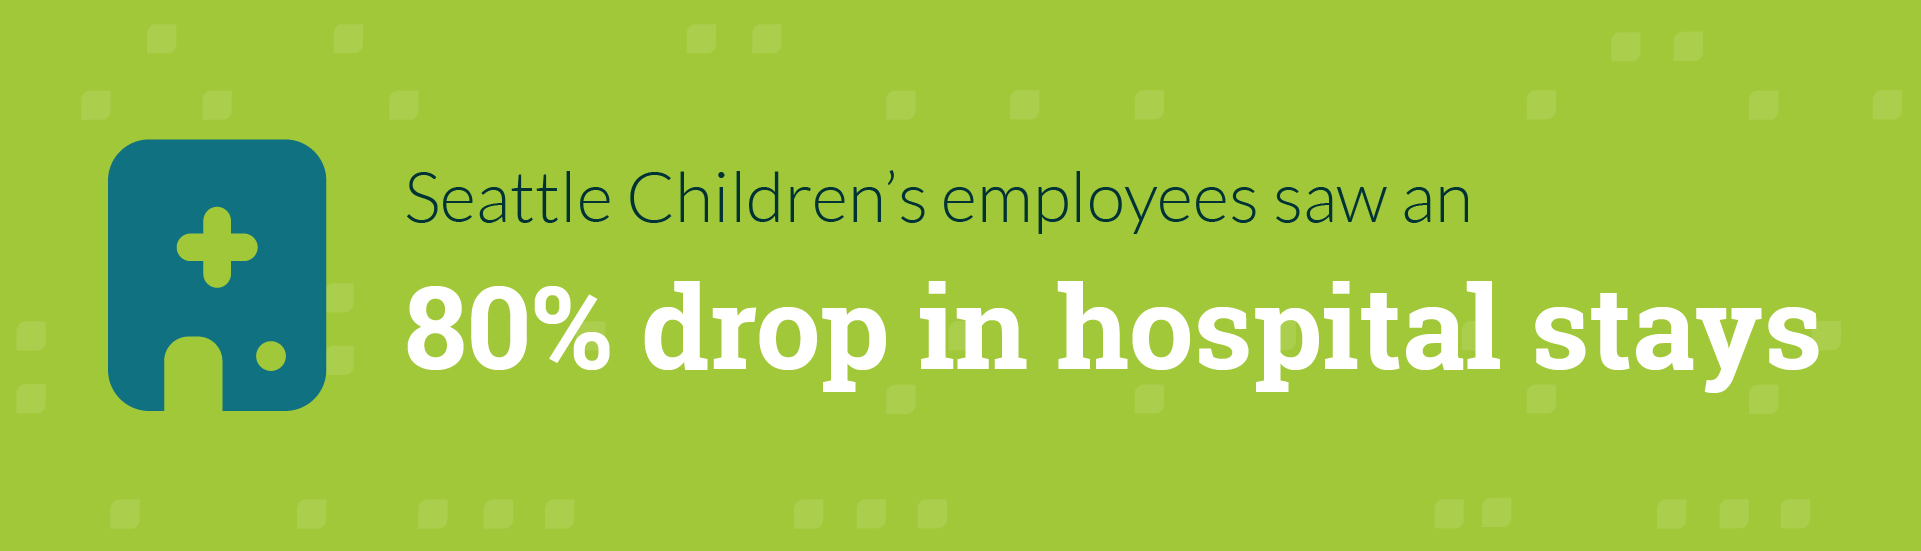 seattle-childrens-hospital-stays_graphic